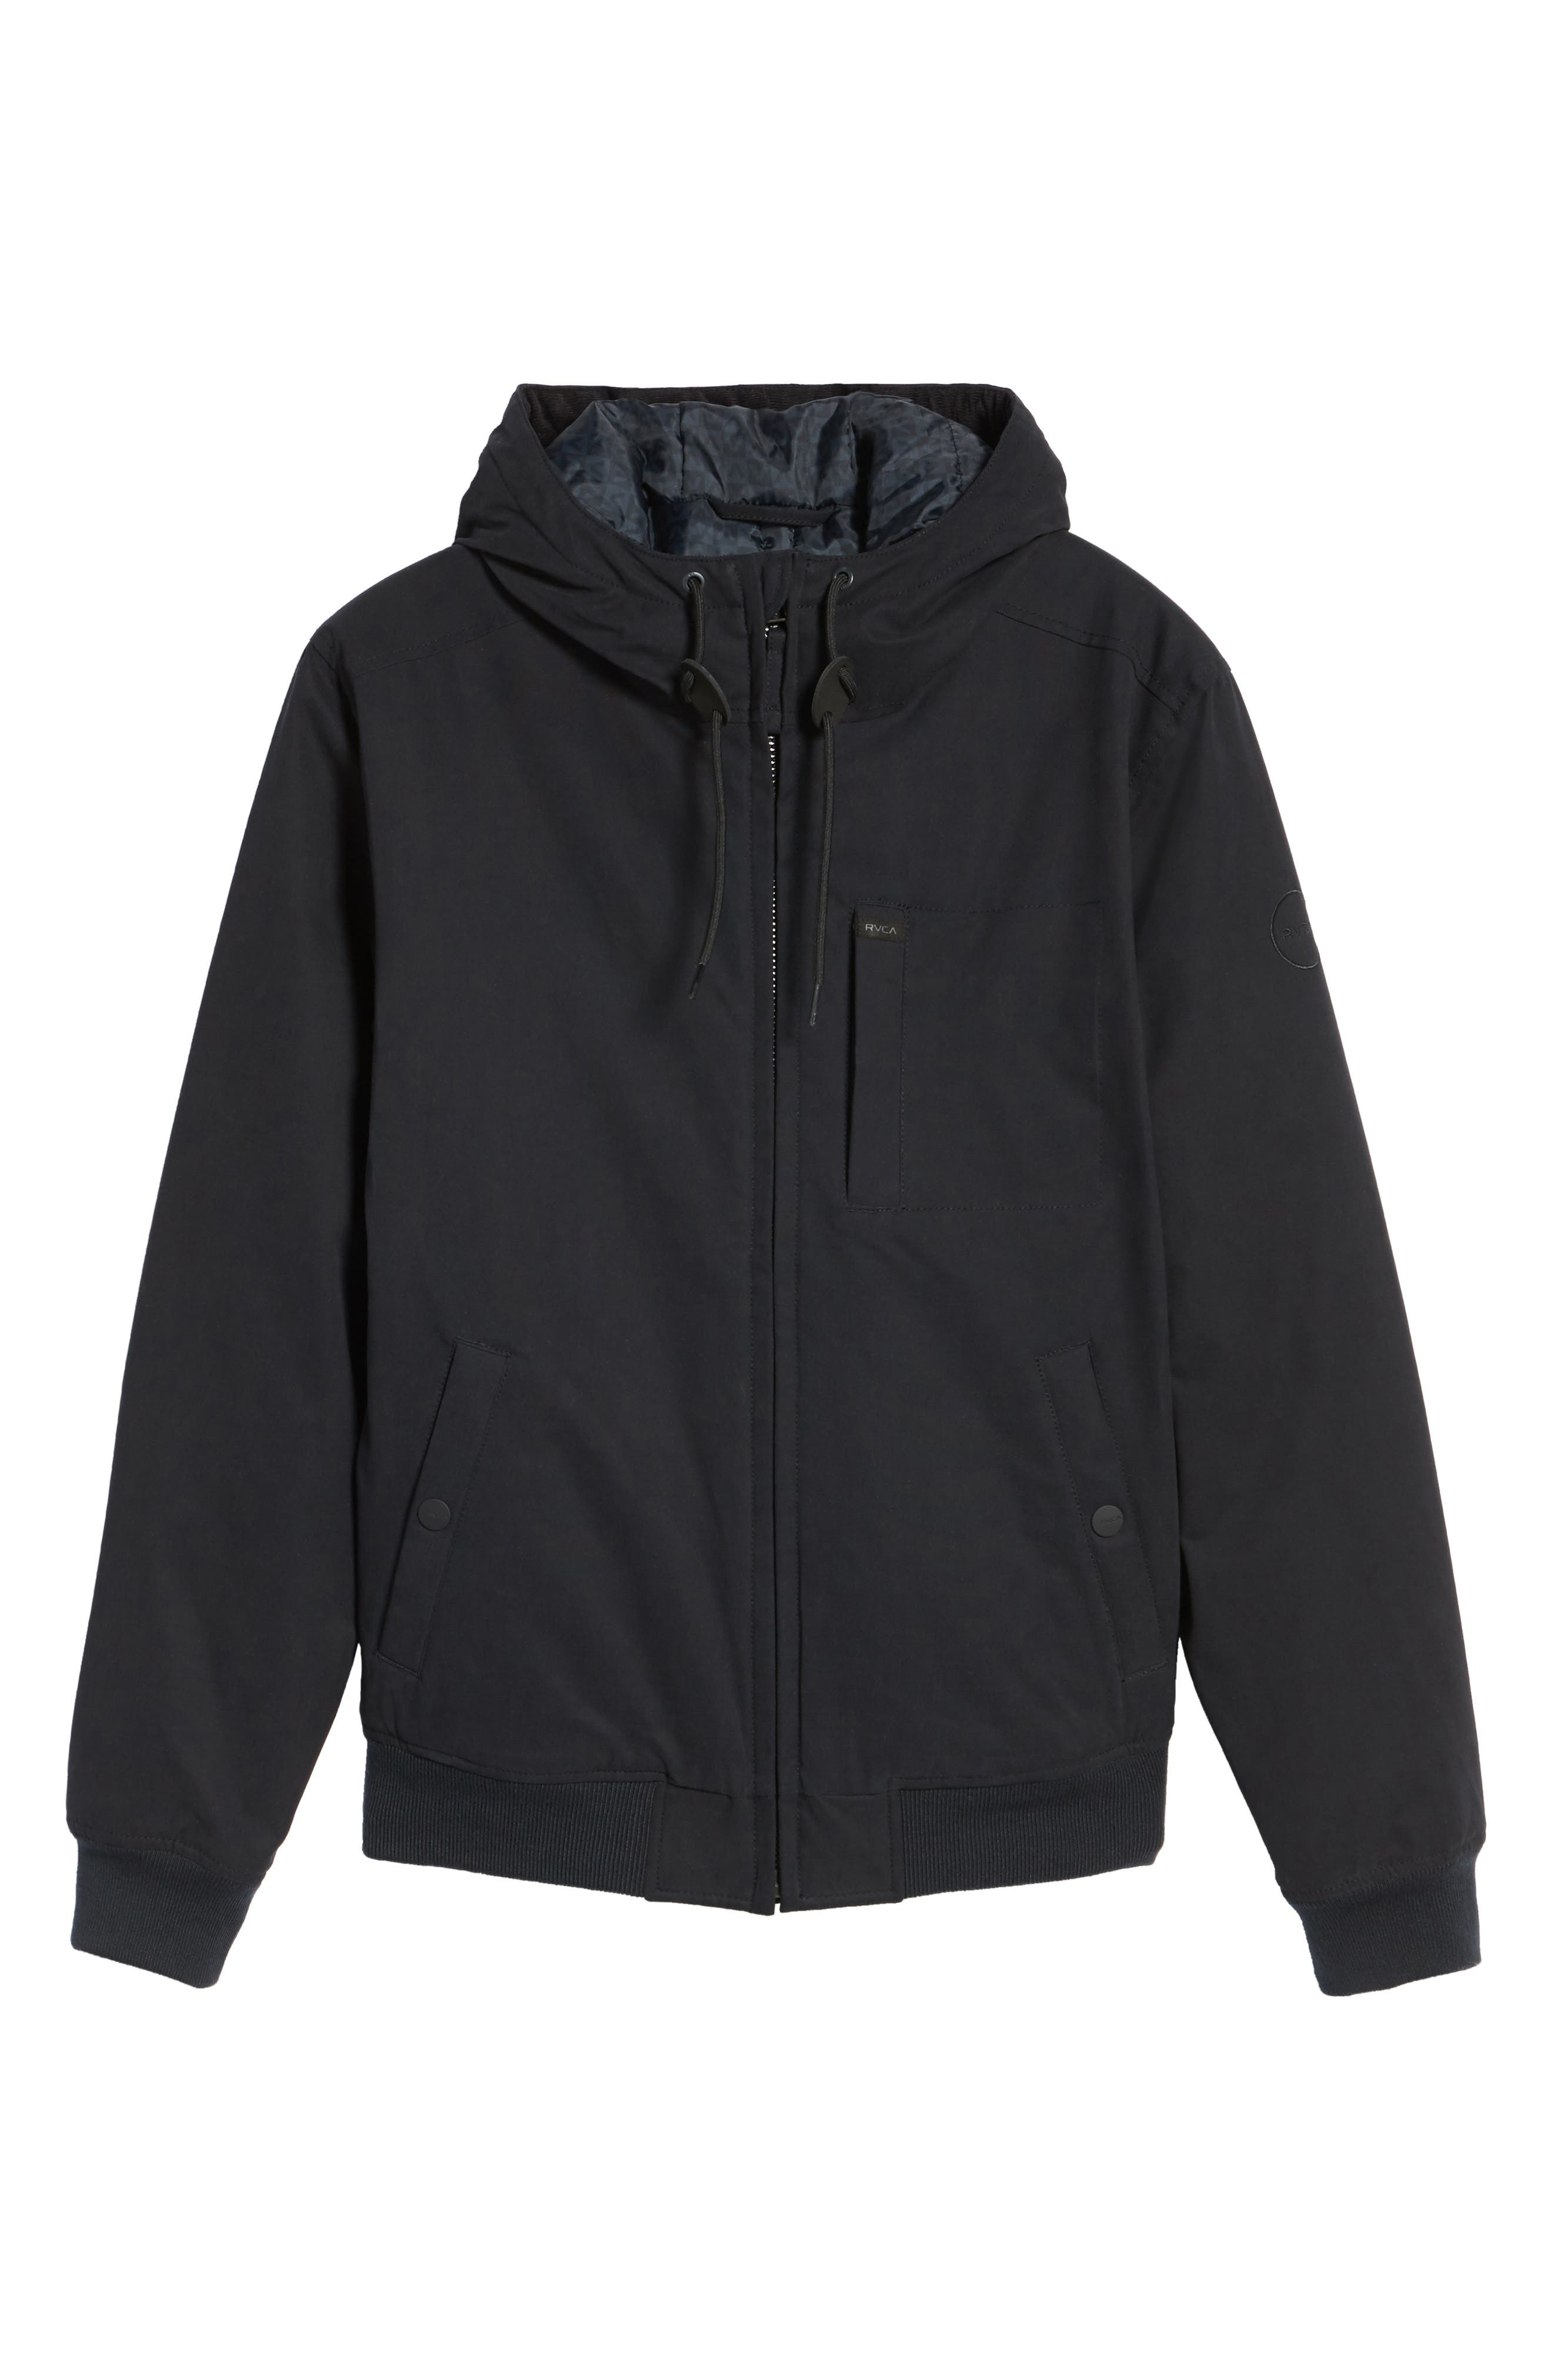 Hooded Bomber Jacket,                             Alternate thumbnail 5, color,                             001